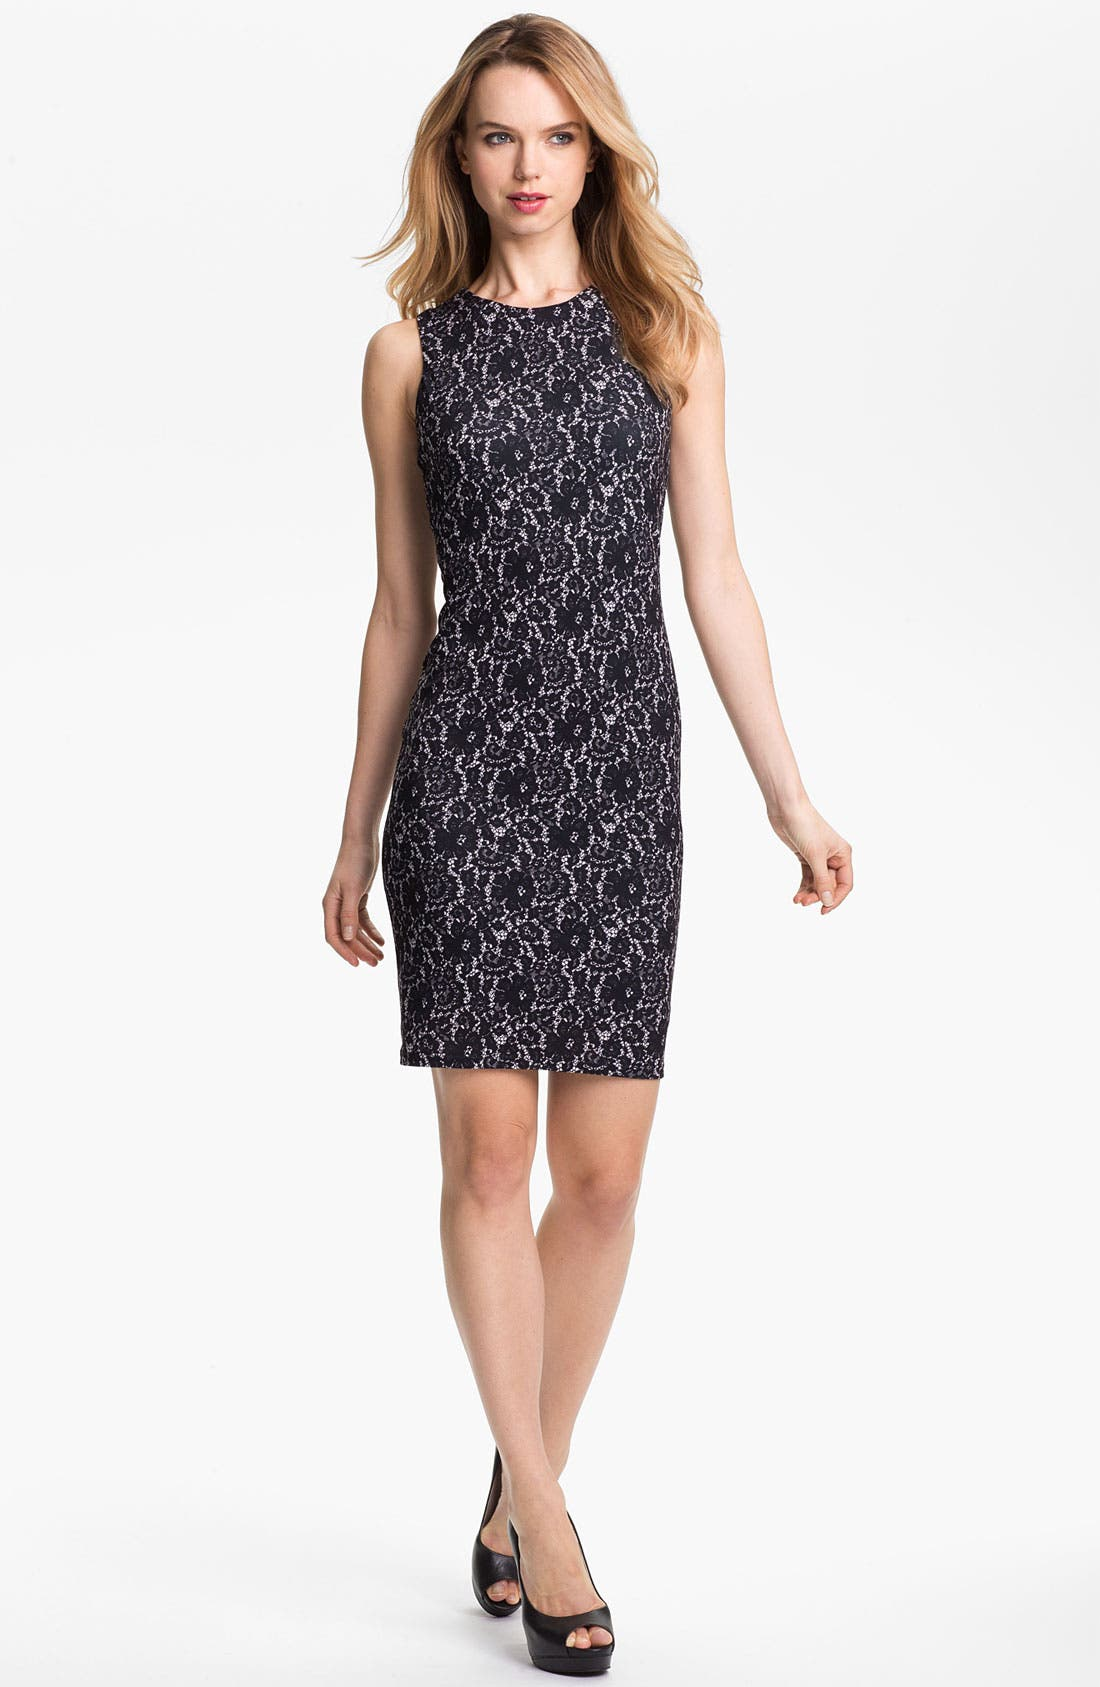 Alternate Image 1 Selected - Vince Camuto Lace Print Sheath Dress